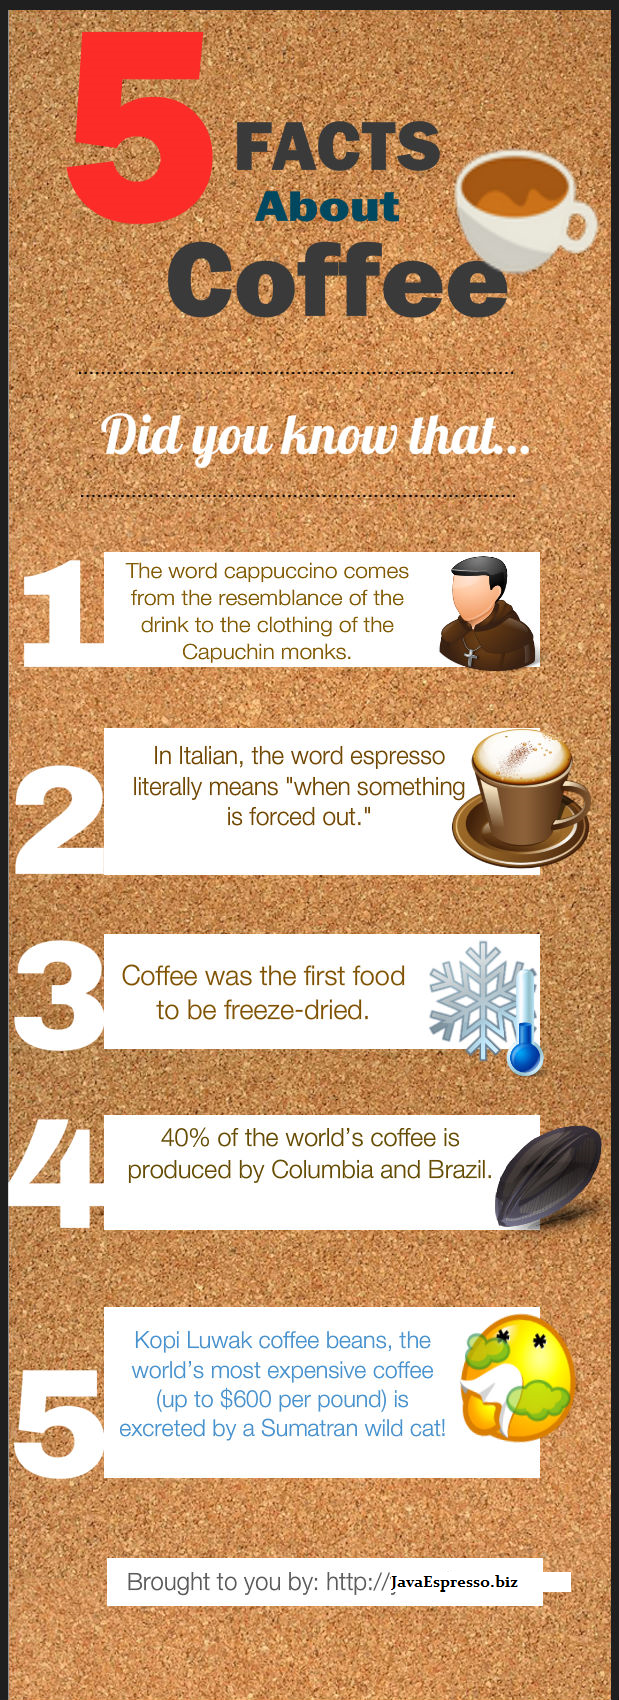 5 Facts About Coffee | Visual.ly